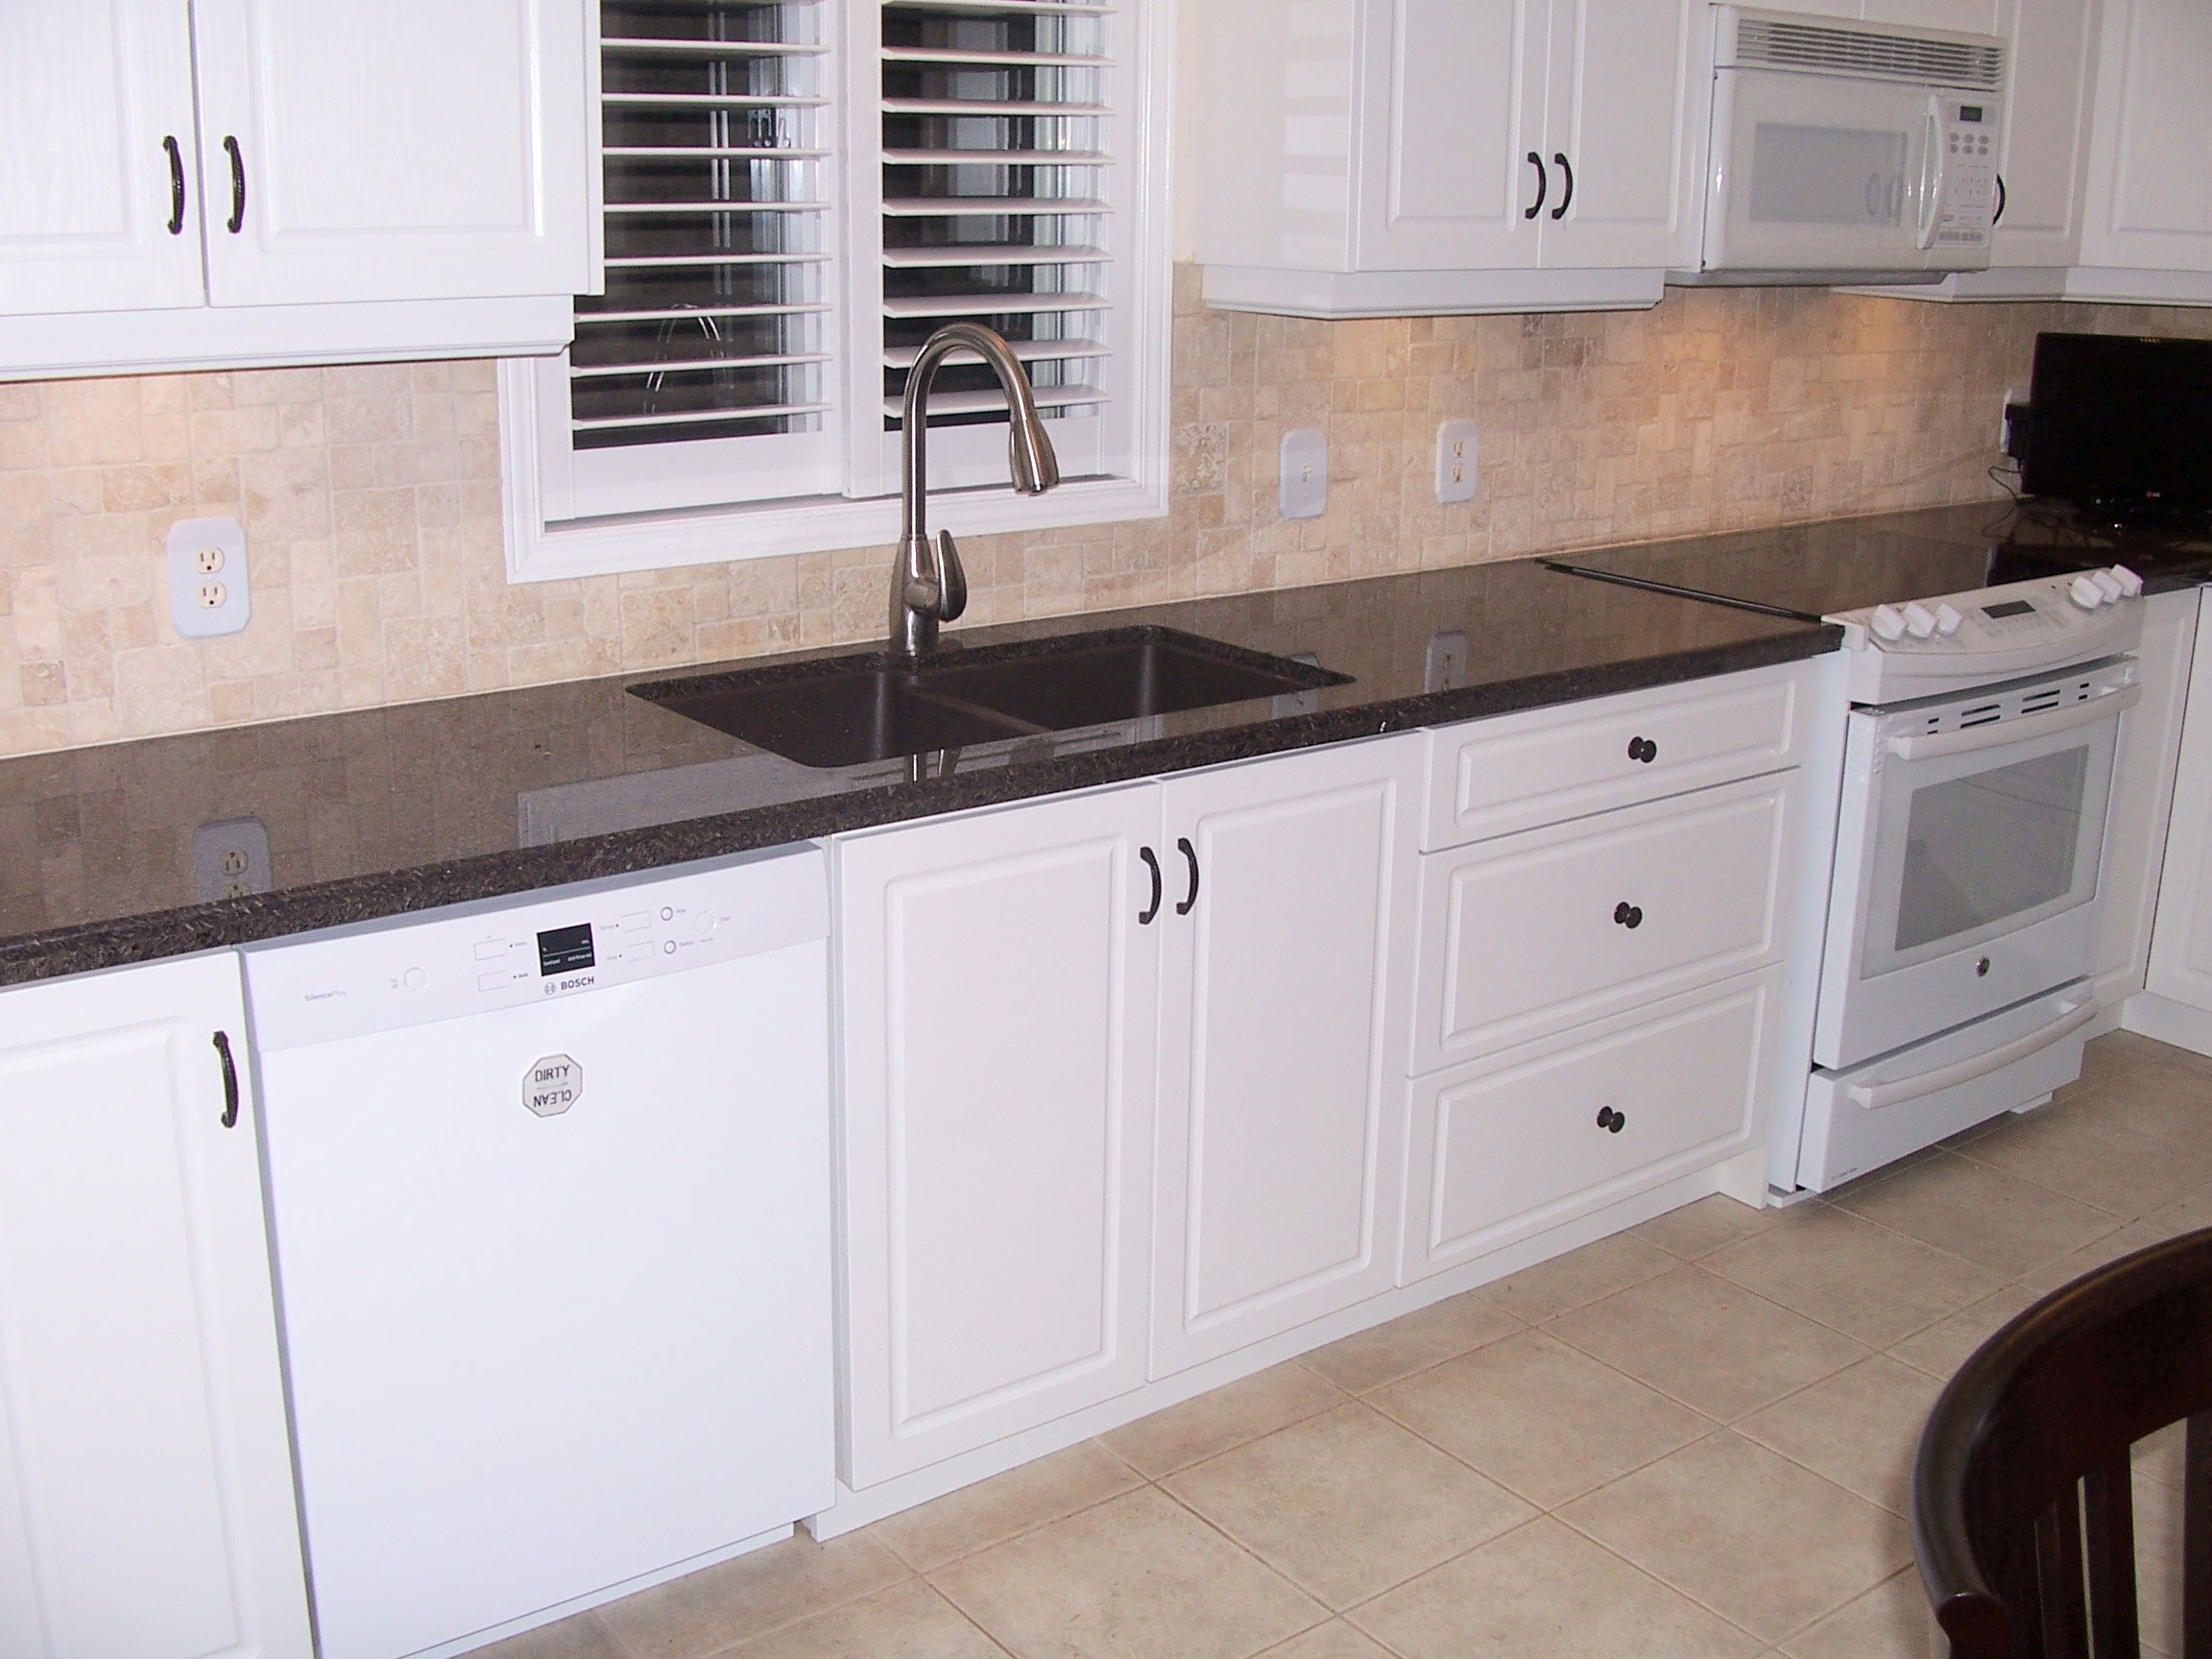 Refacing Cabinets After